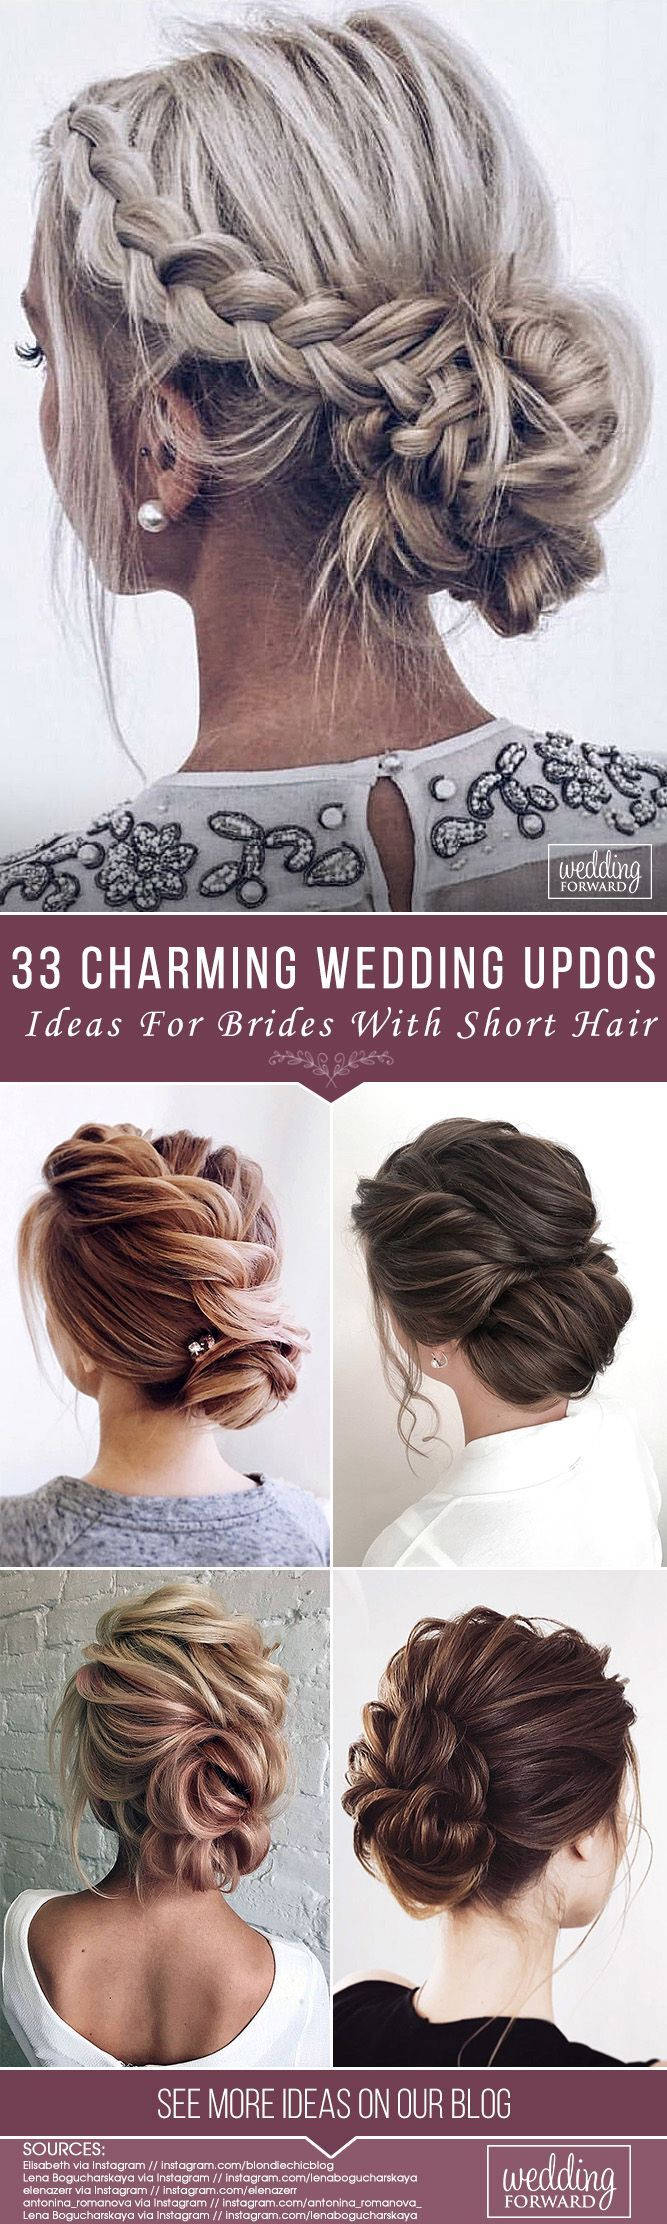 33 wedding updos for short hair | wedding hairstyles & updos